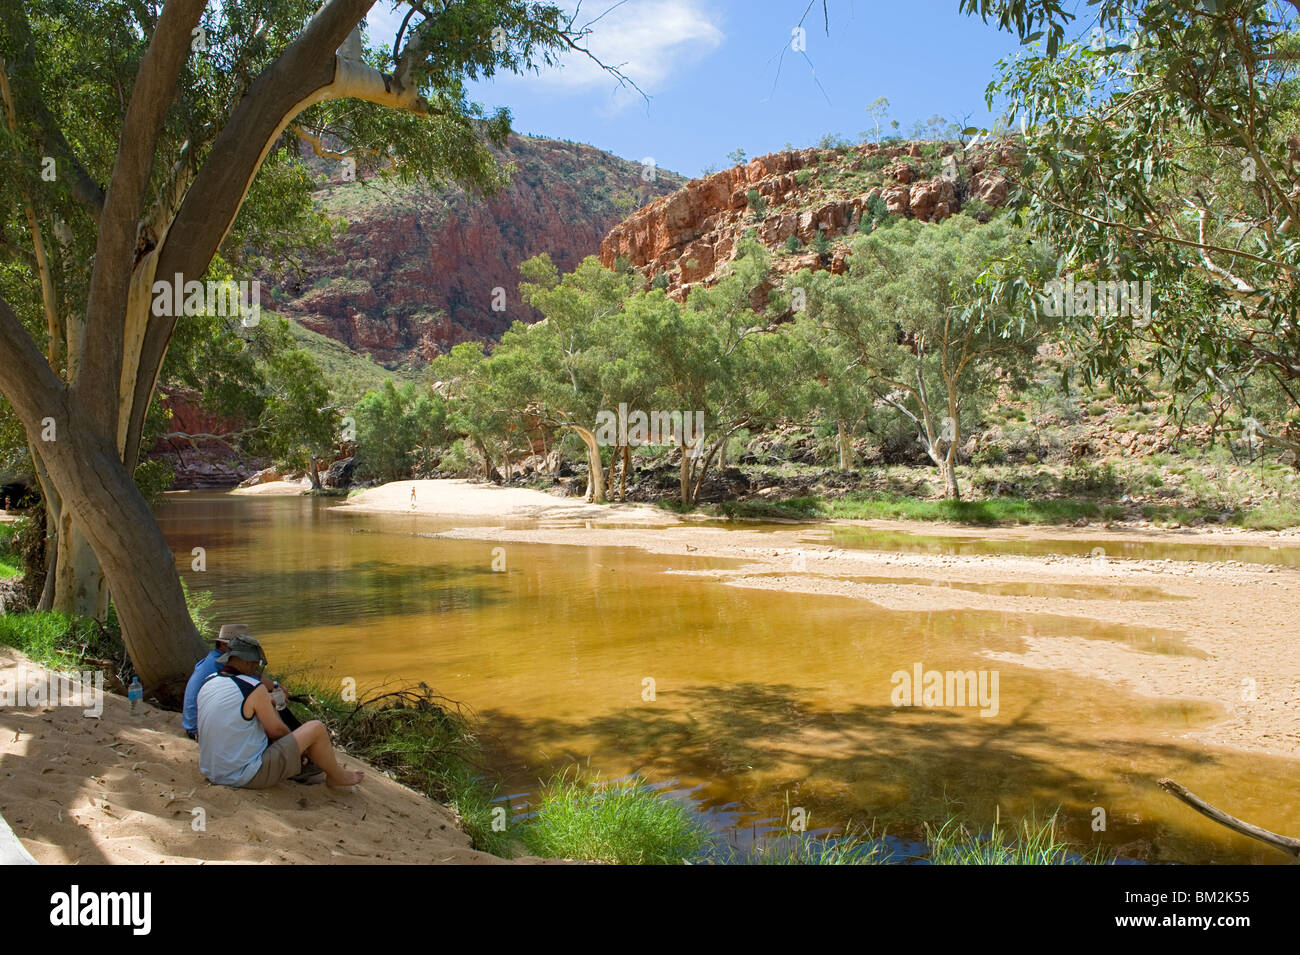 Two people sitting in the shade of trees overlooking the waterhole at Ormiston Gorge in the Western MacDonnell Ranges - Stock Image